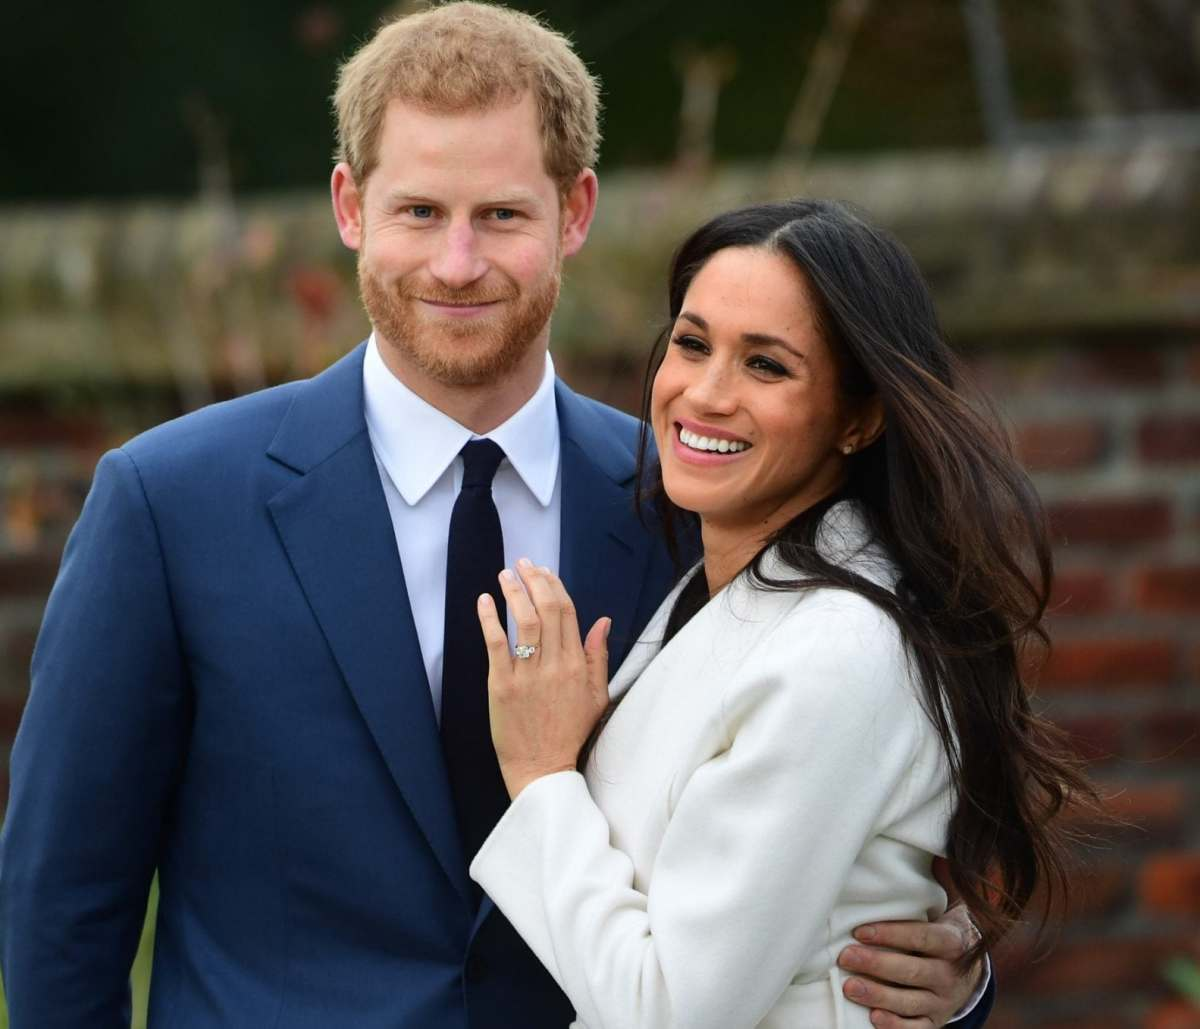 Meghan Markle shows off her wedding ring as she poses with Prince Harry in Kensington Palace